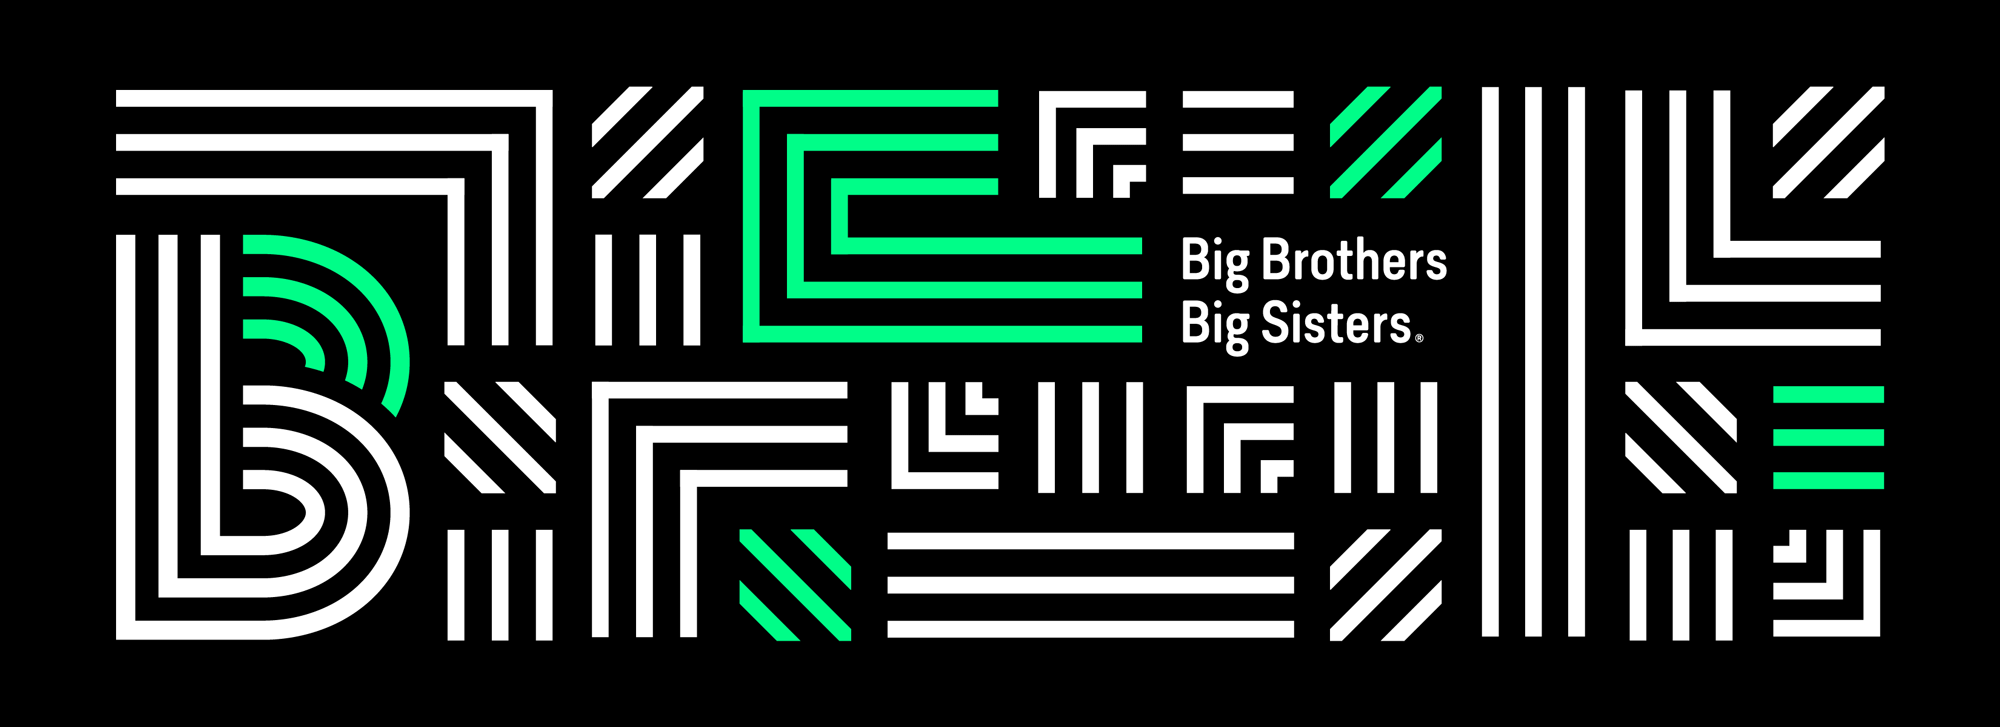 New Logo and Identity for Big Brothers Big Sisters by Barkley